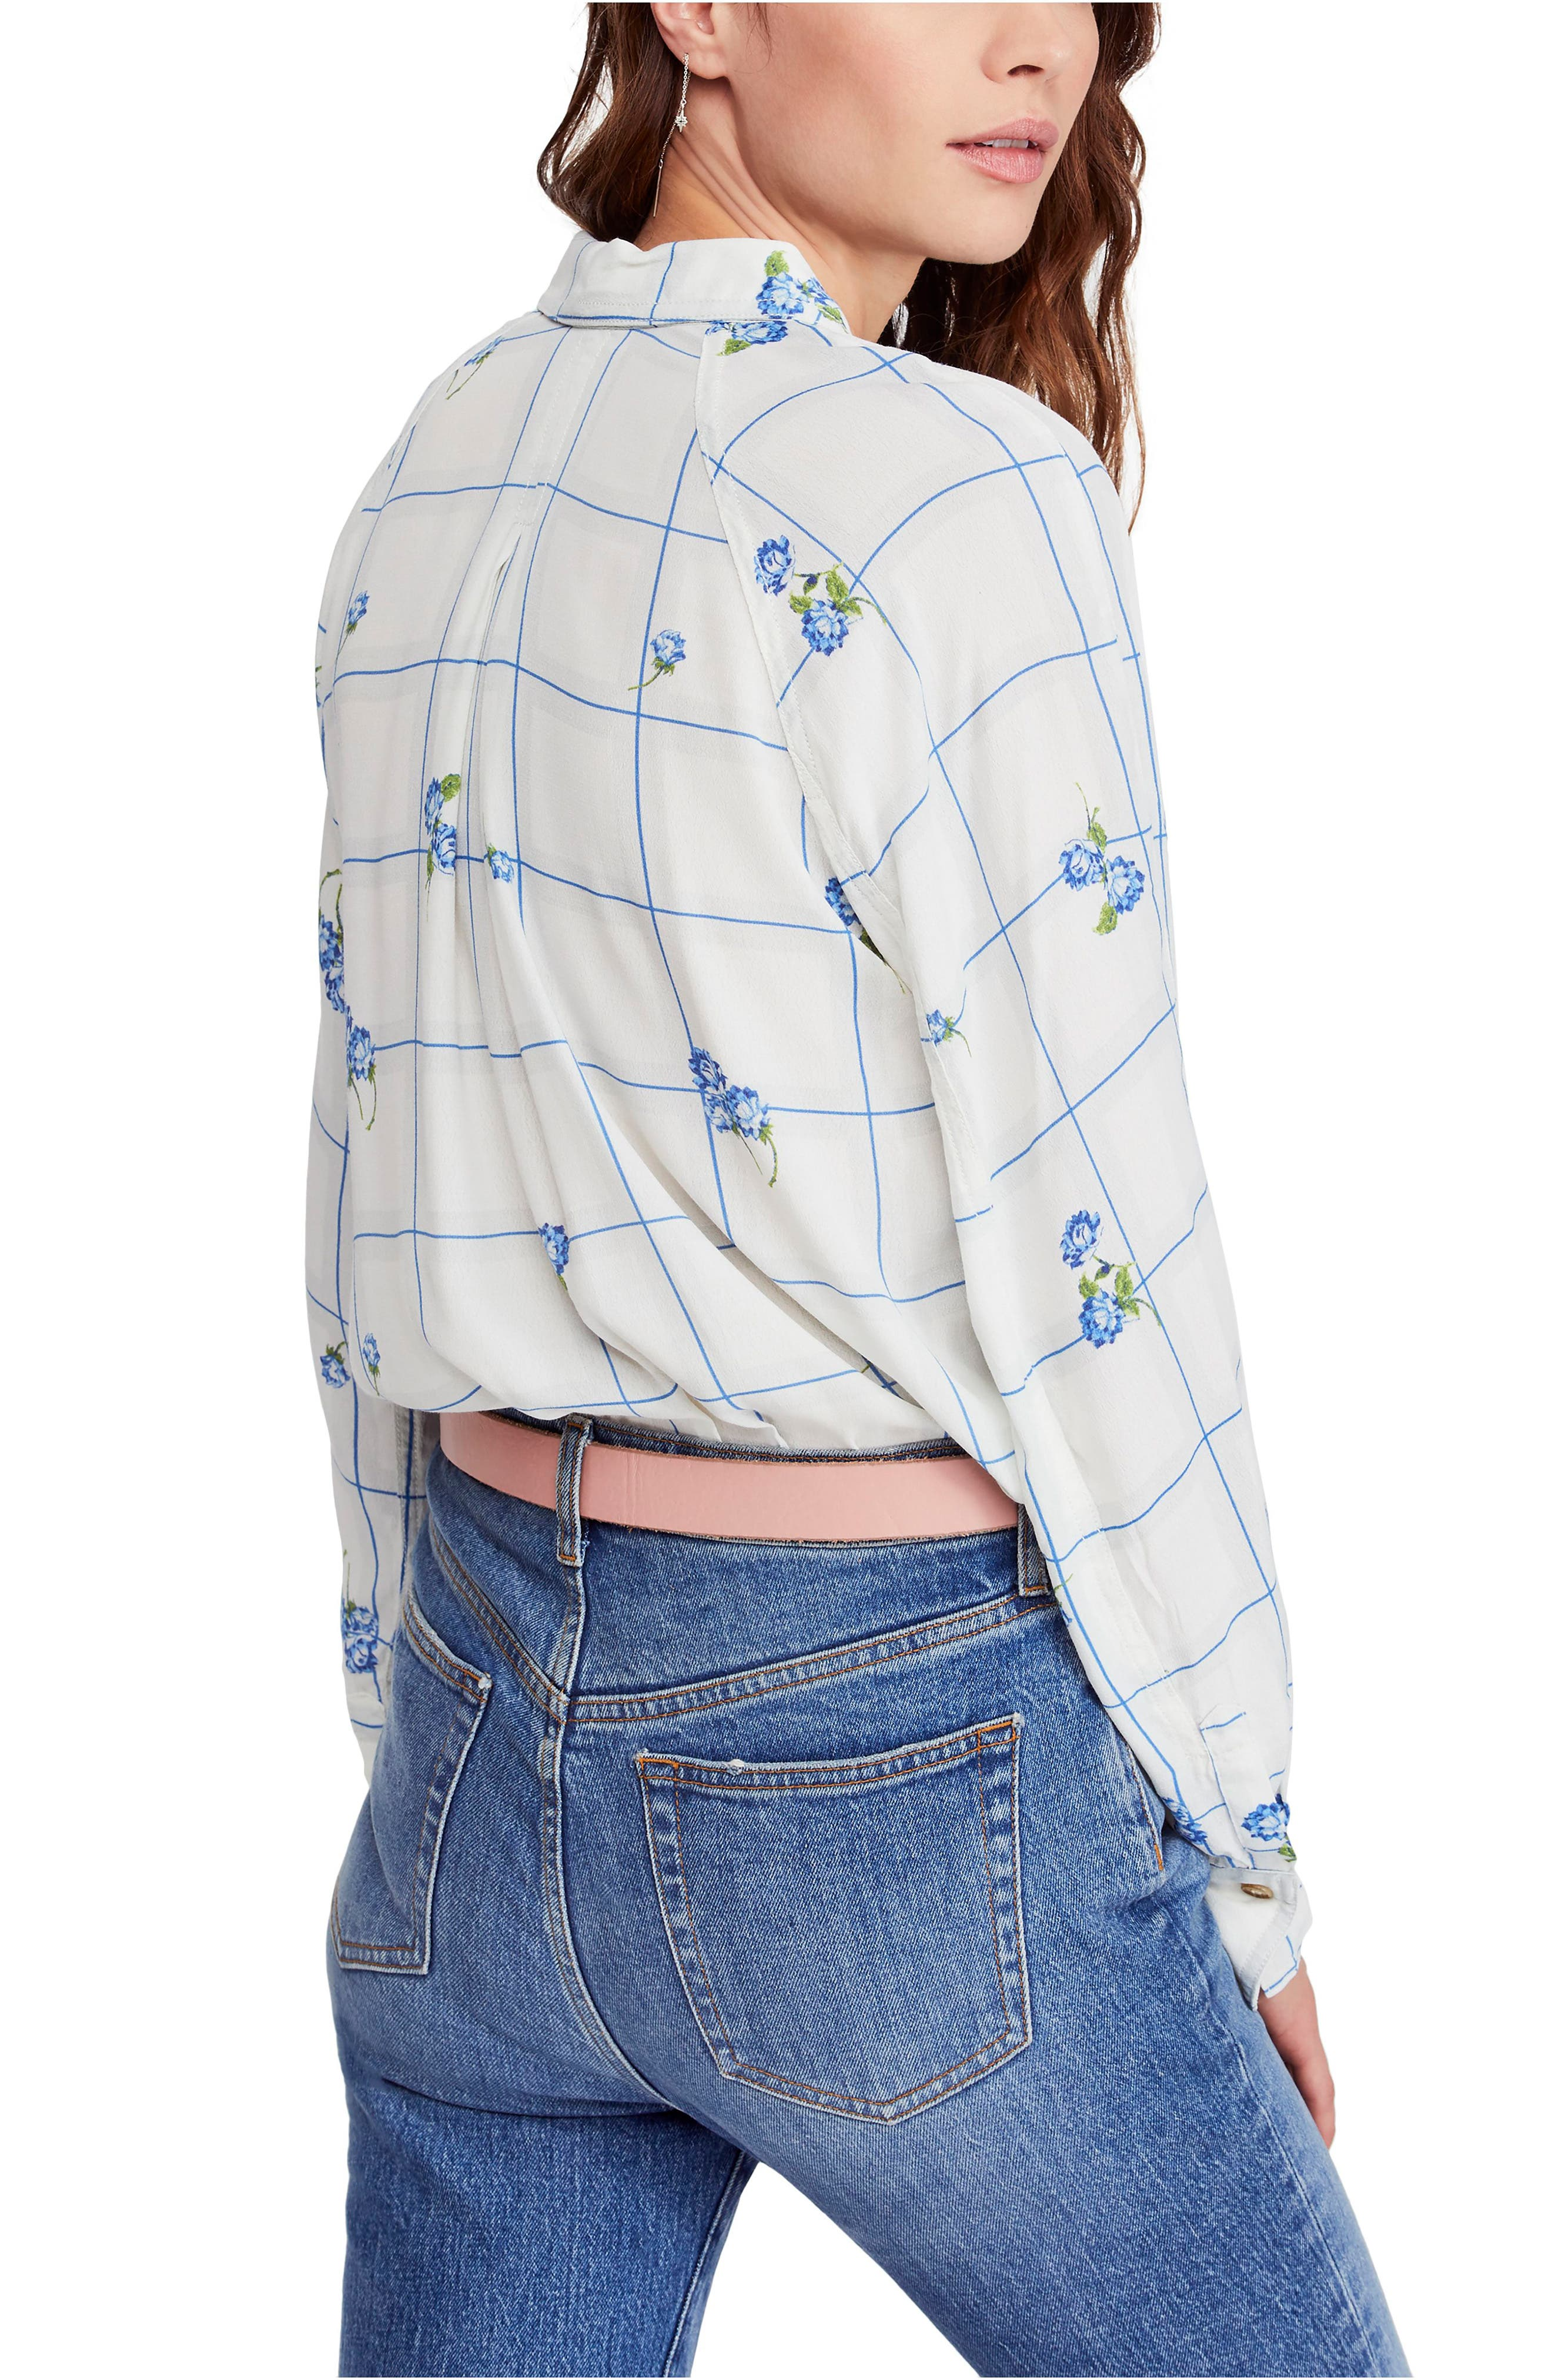 FREE PEOPLE, Window to My Heart Blouse, Alternate thumbnail 2, color, WHITE